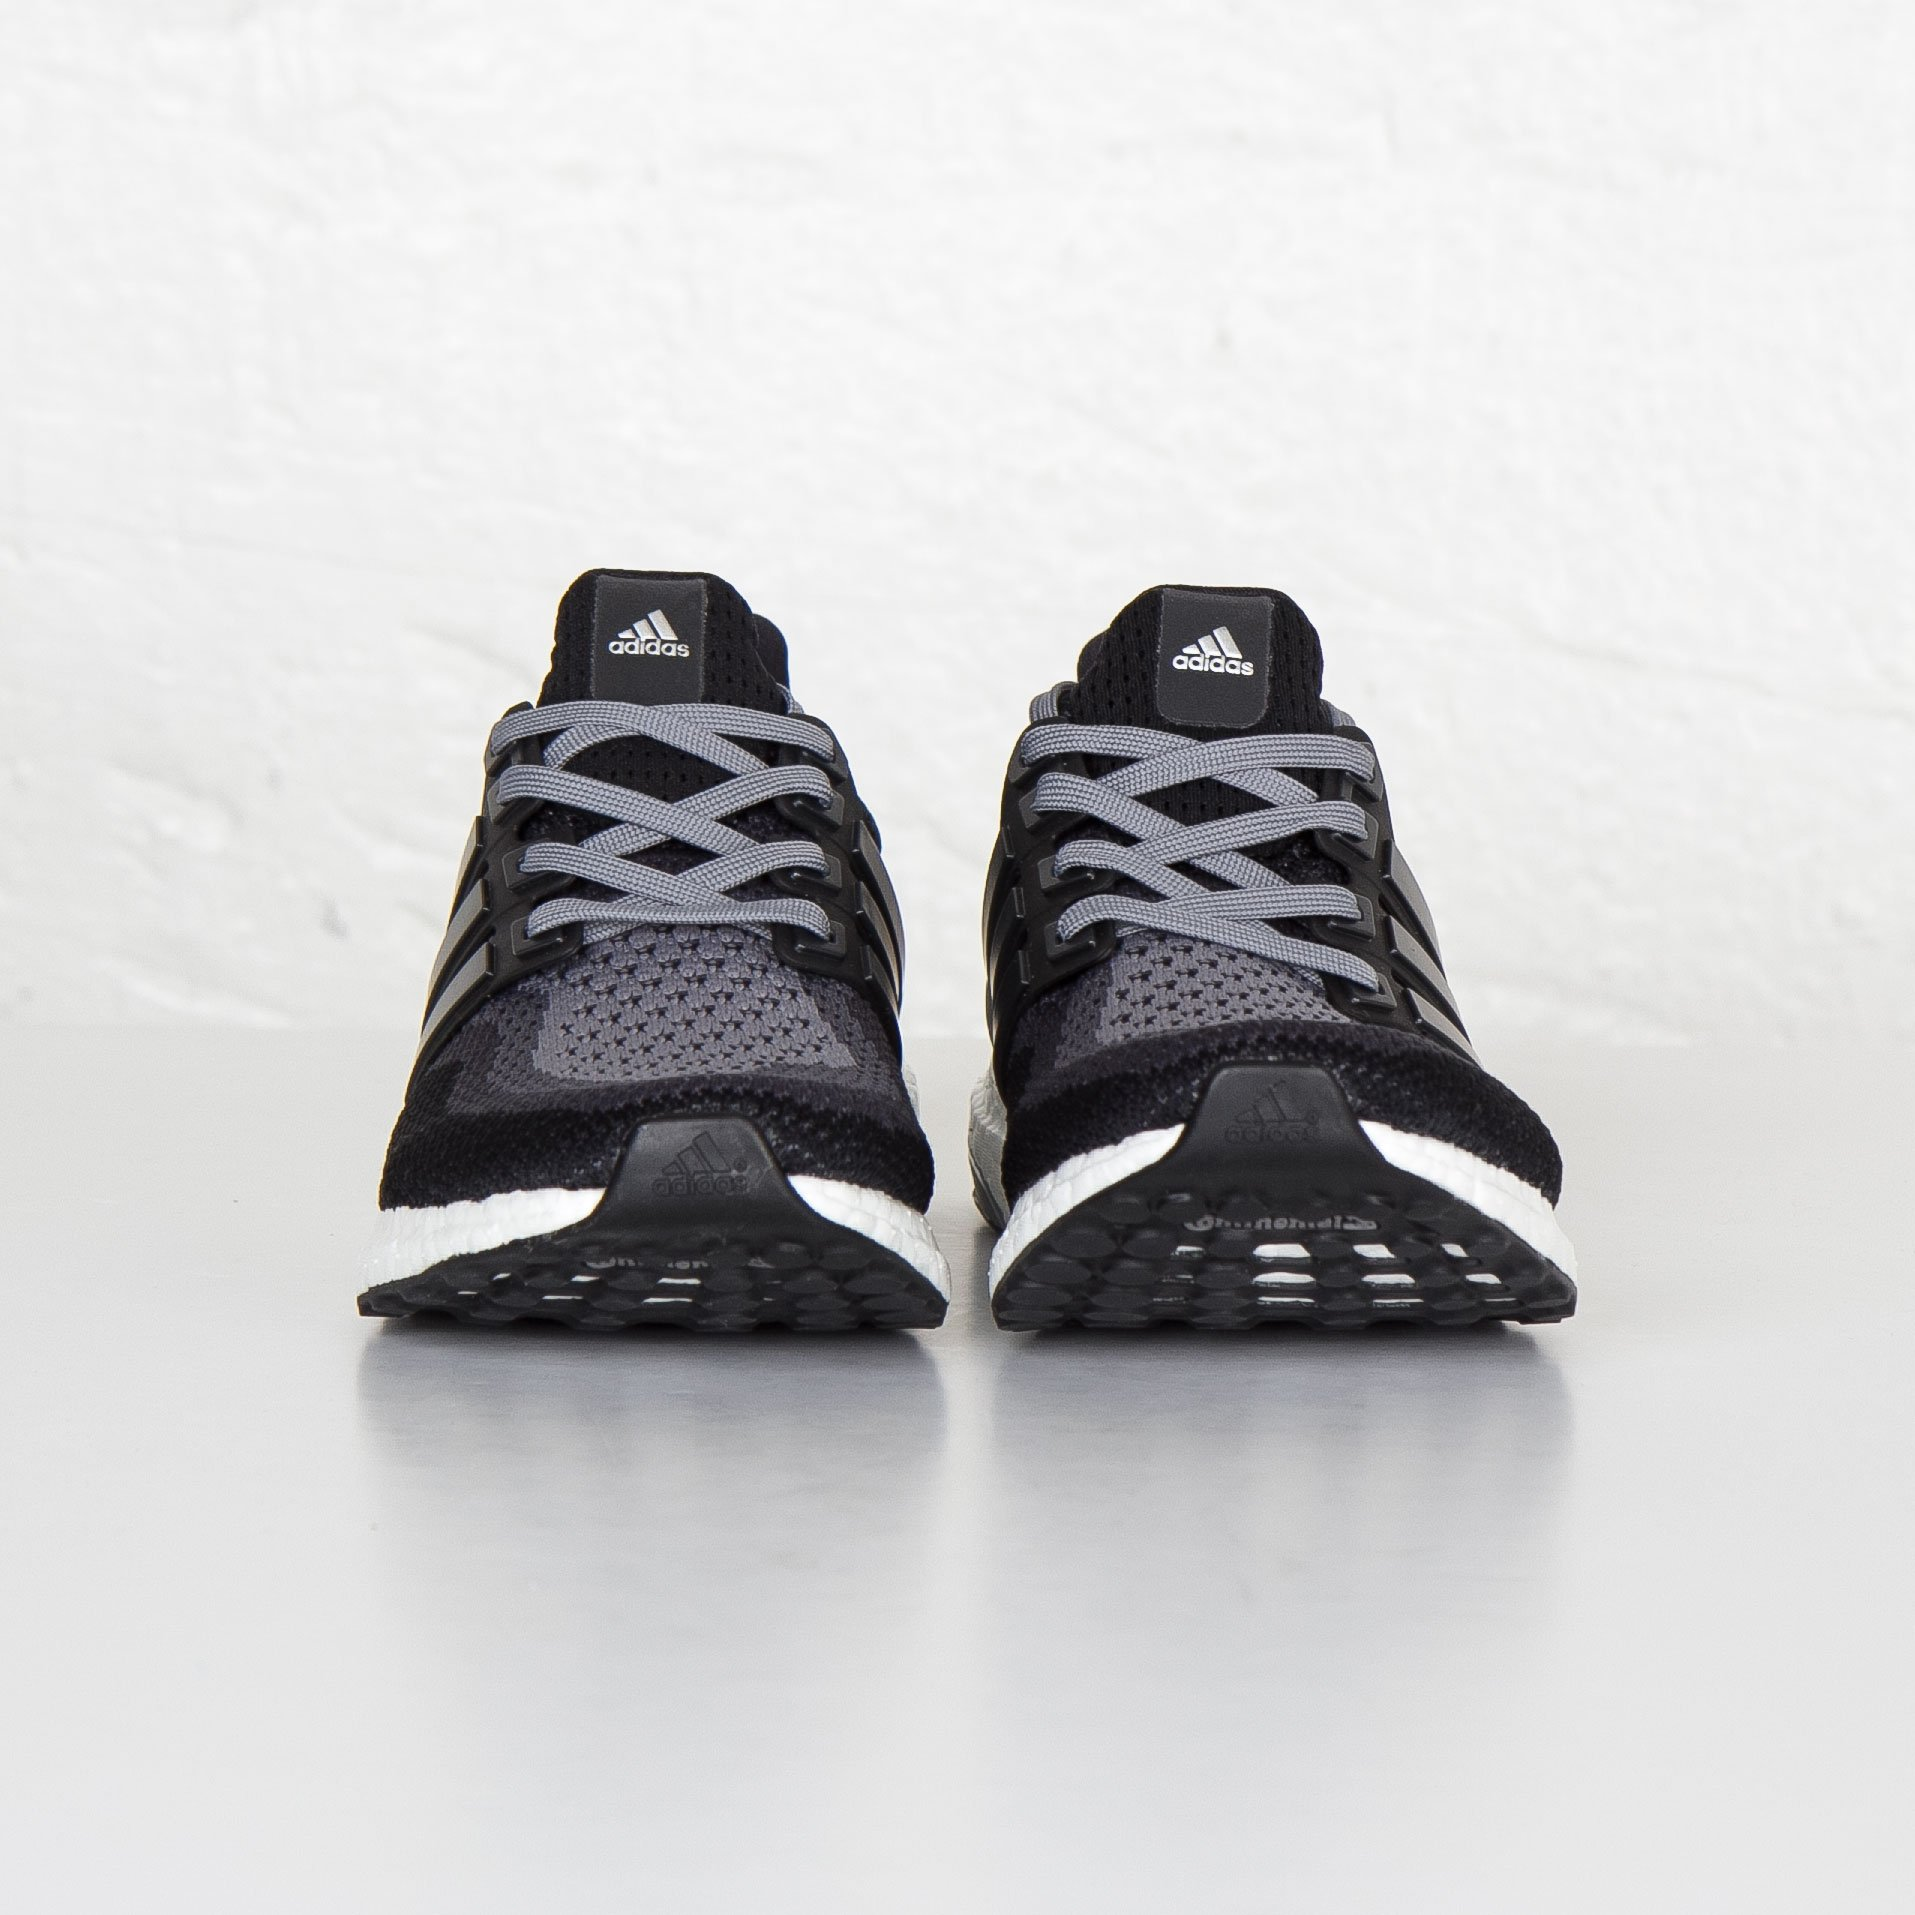 premium selection d70bc d2fa3 adidas Ultra Boost W - Af5141 - Sneakersnstuff | sneakers ...